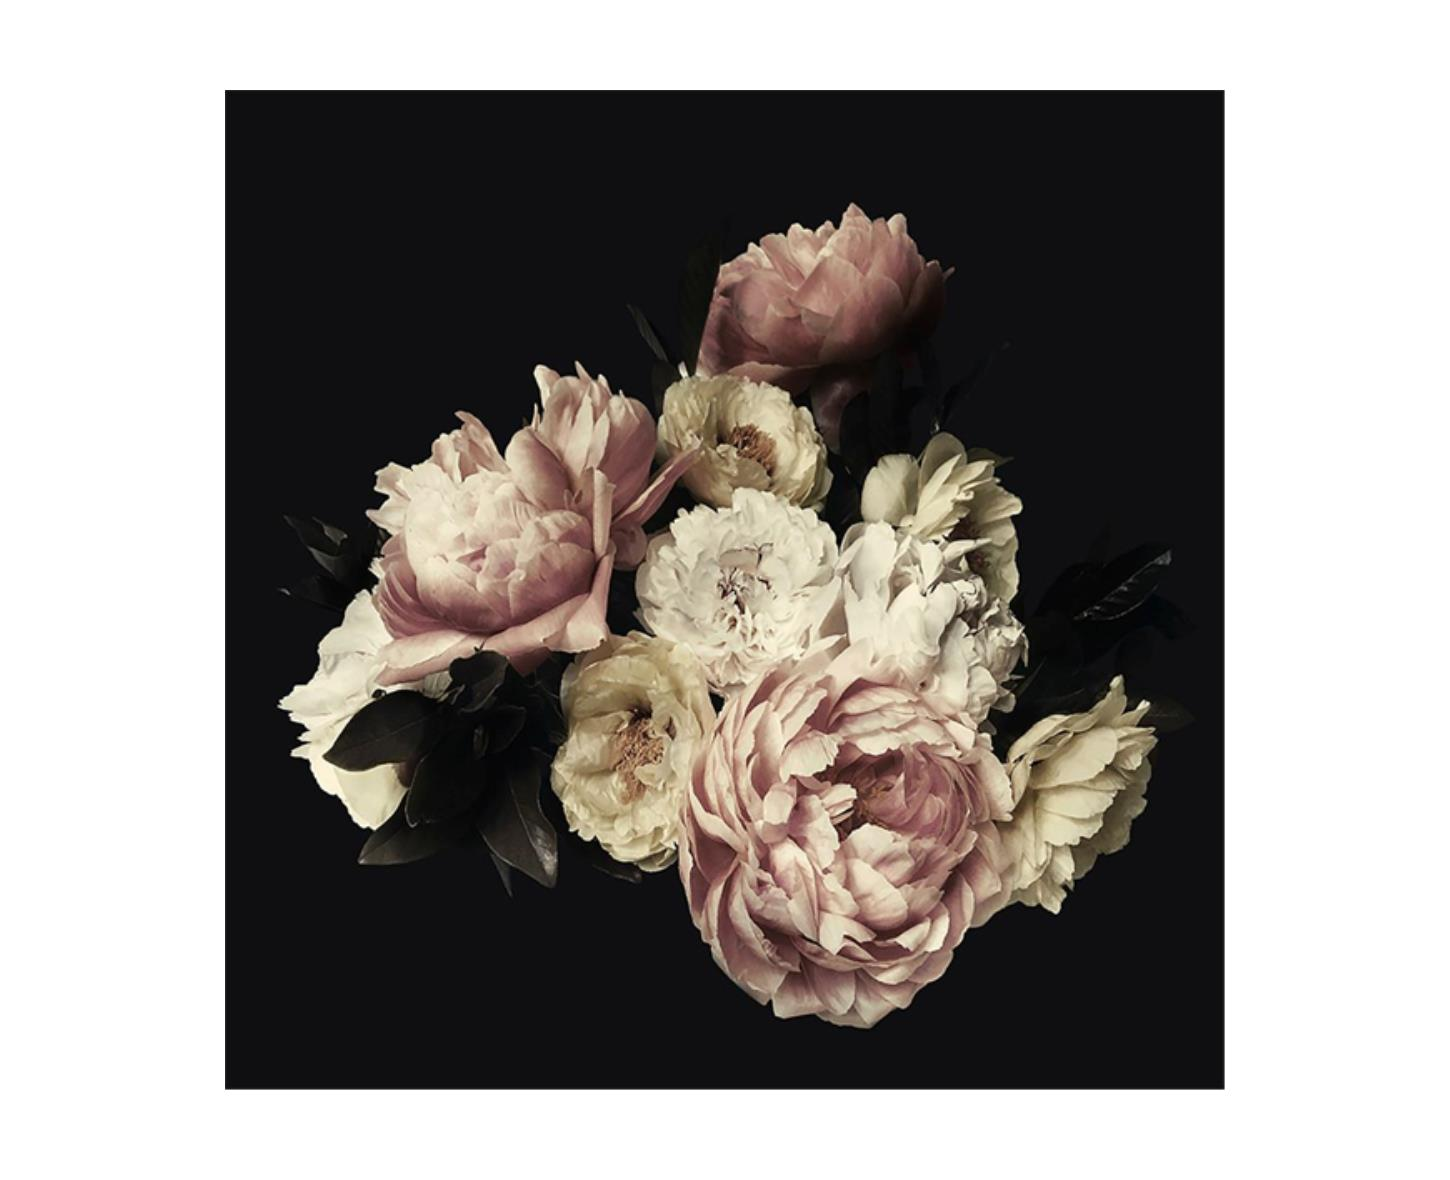 Portrait of Peonies